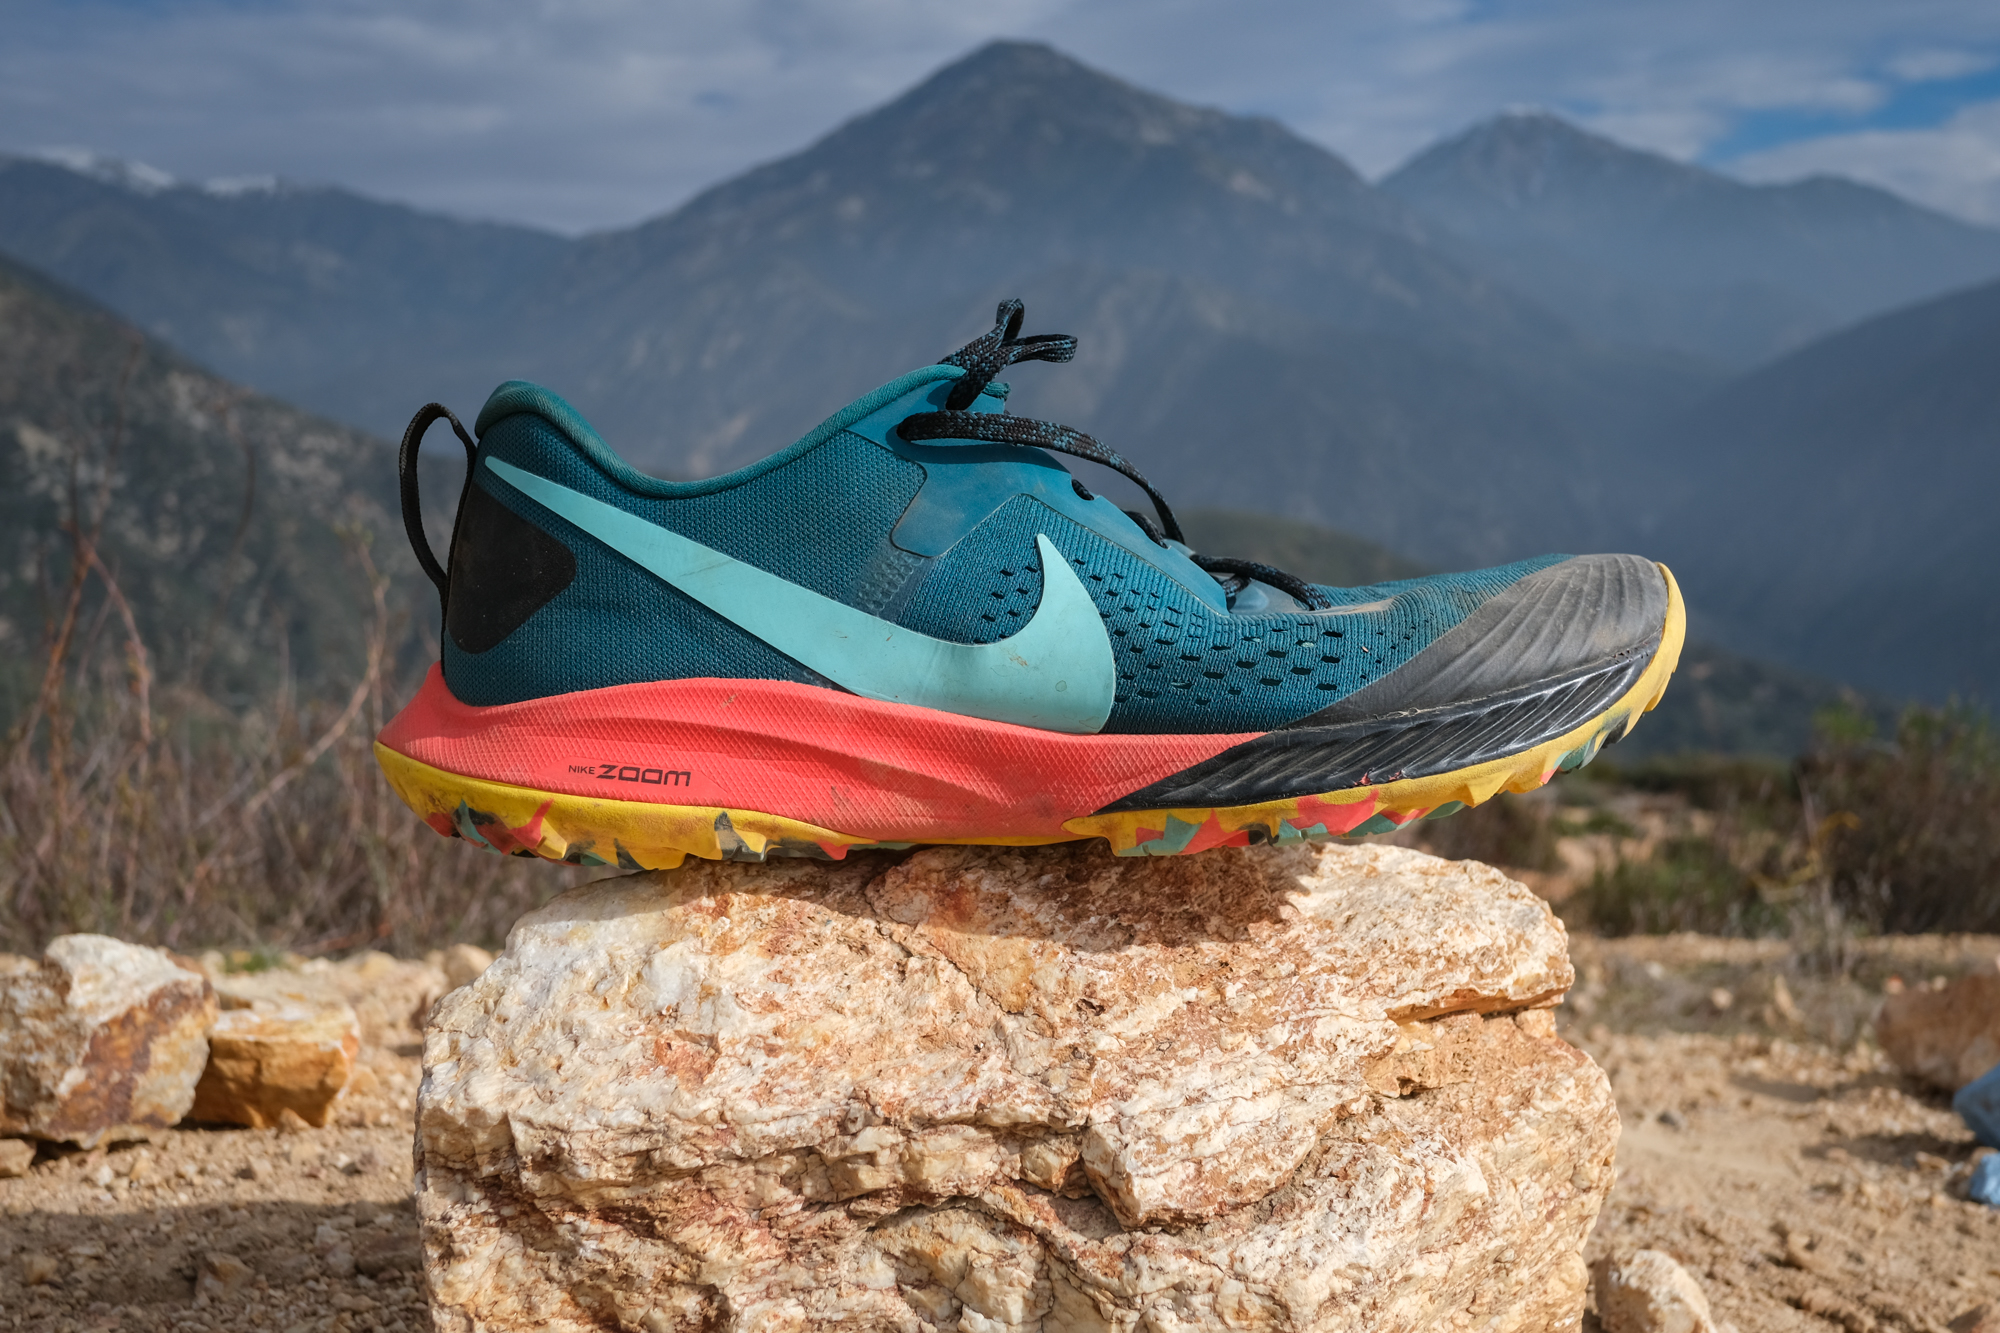 Gear Review: Nike Terra Kiger 5 Trail Shoe